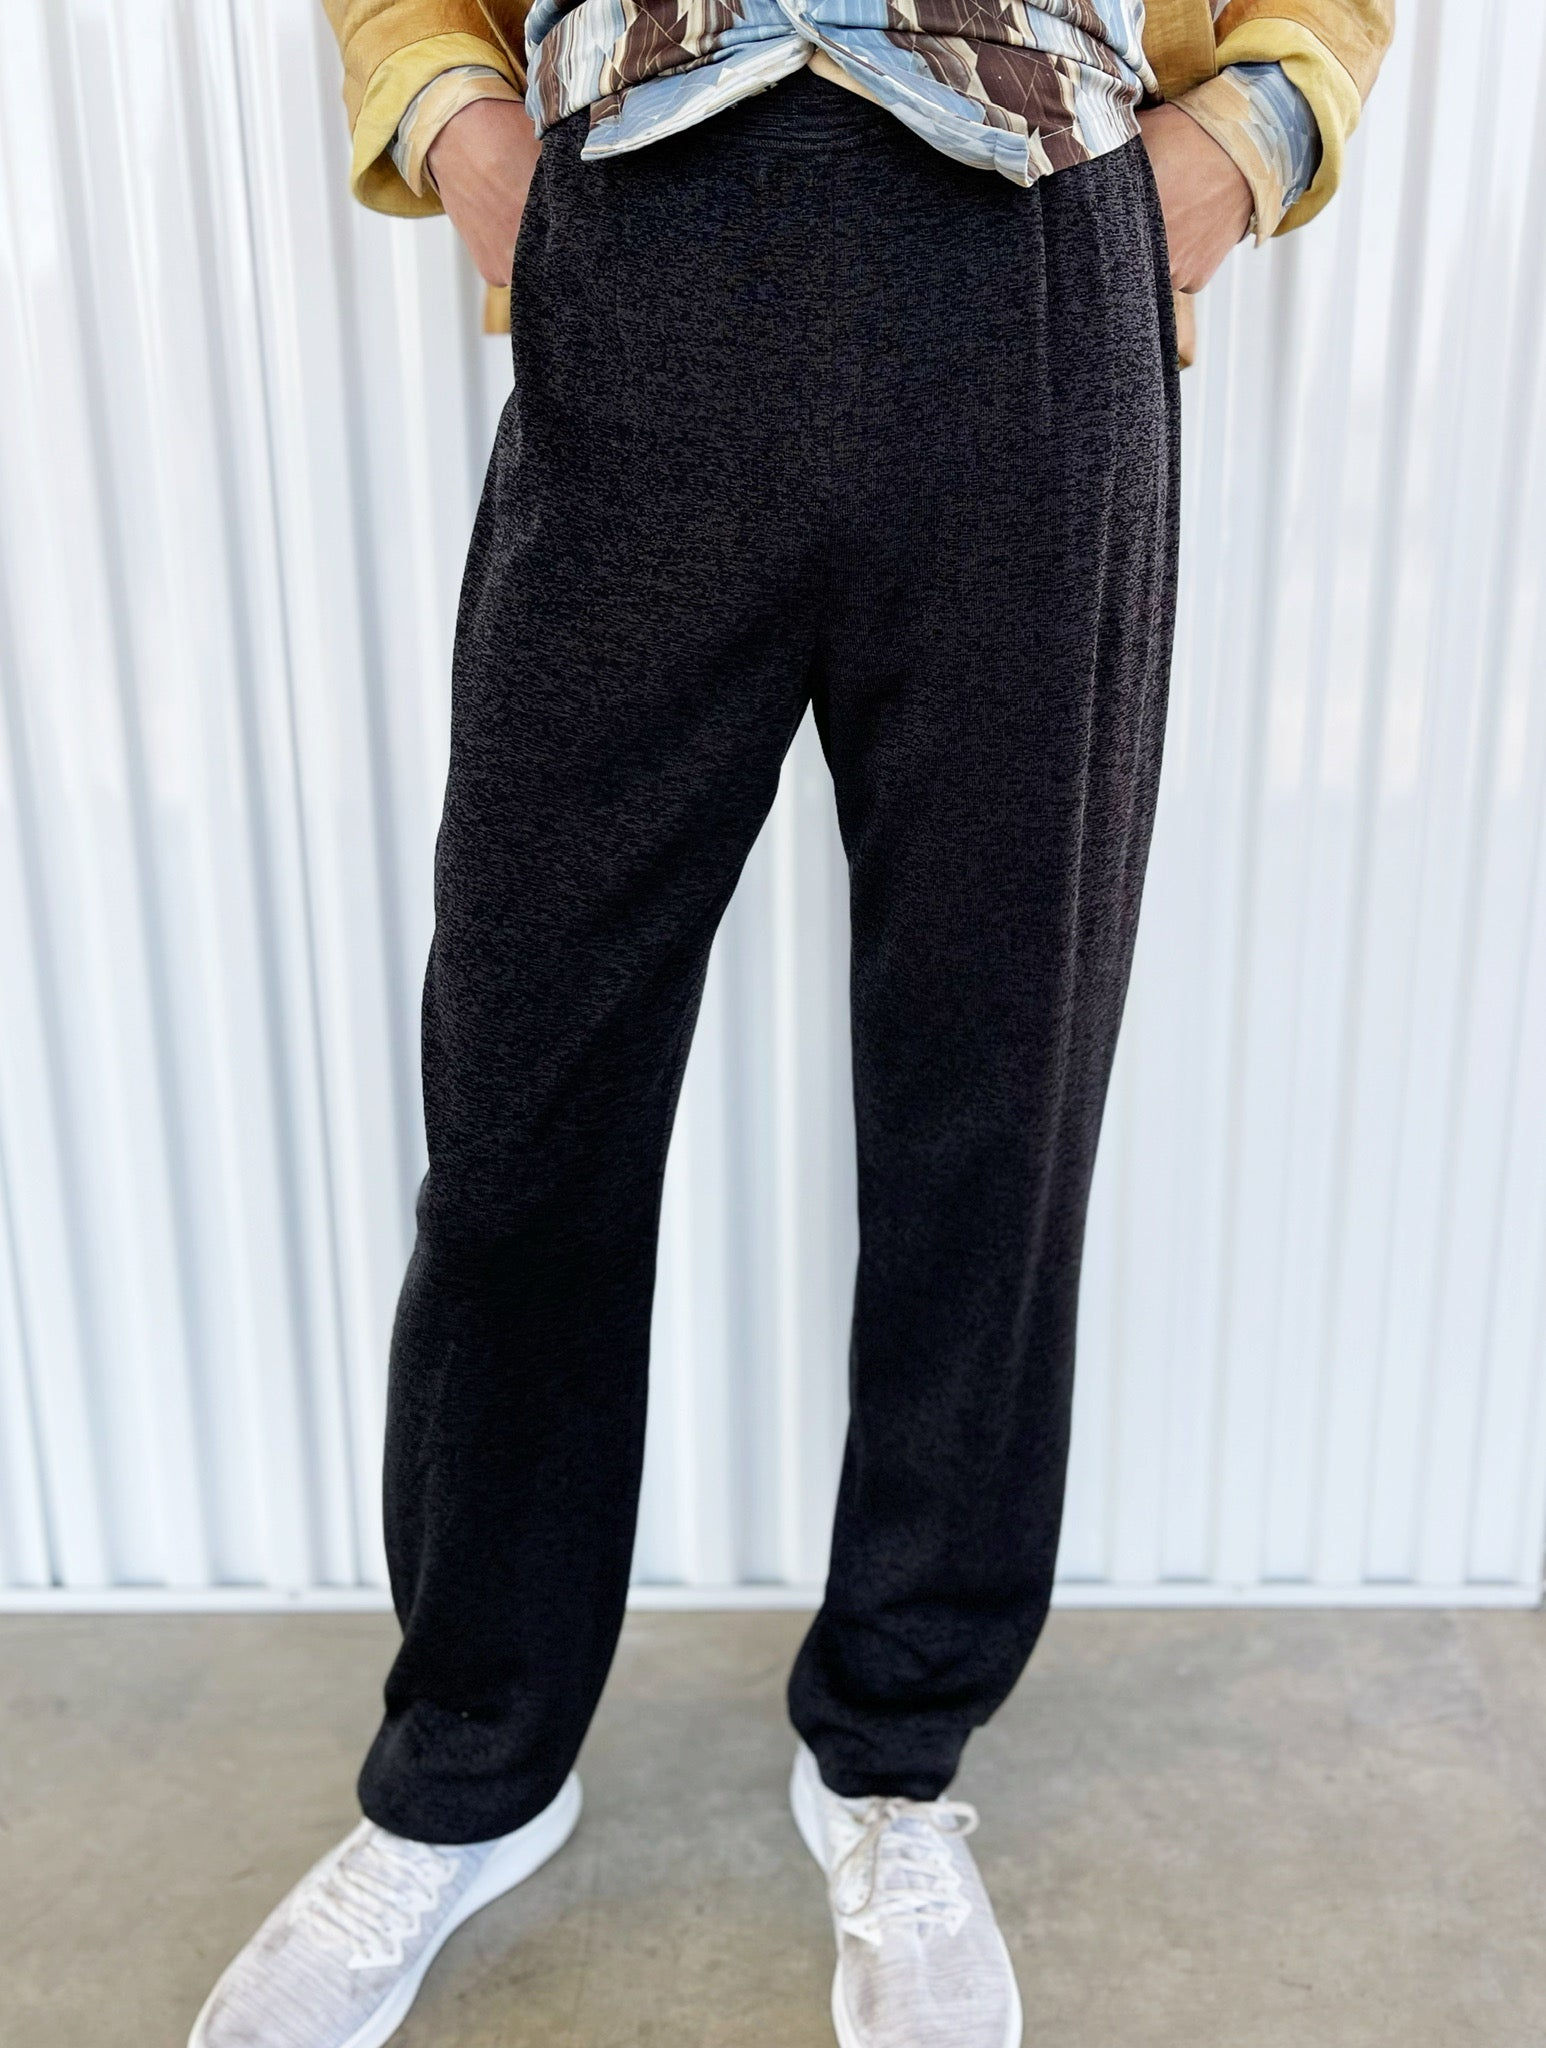 Misook Charcoal Knit Pants (M)